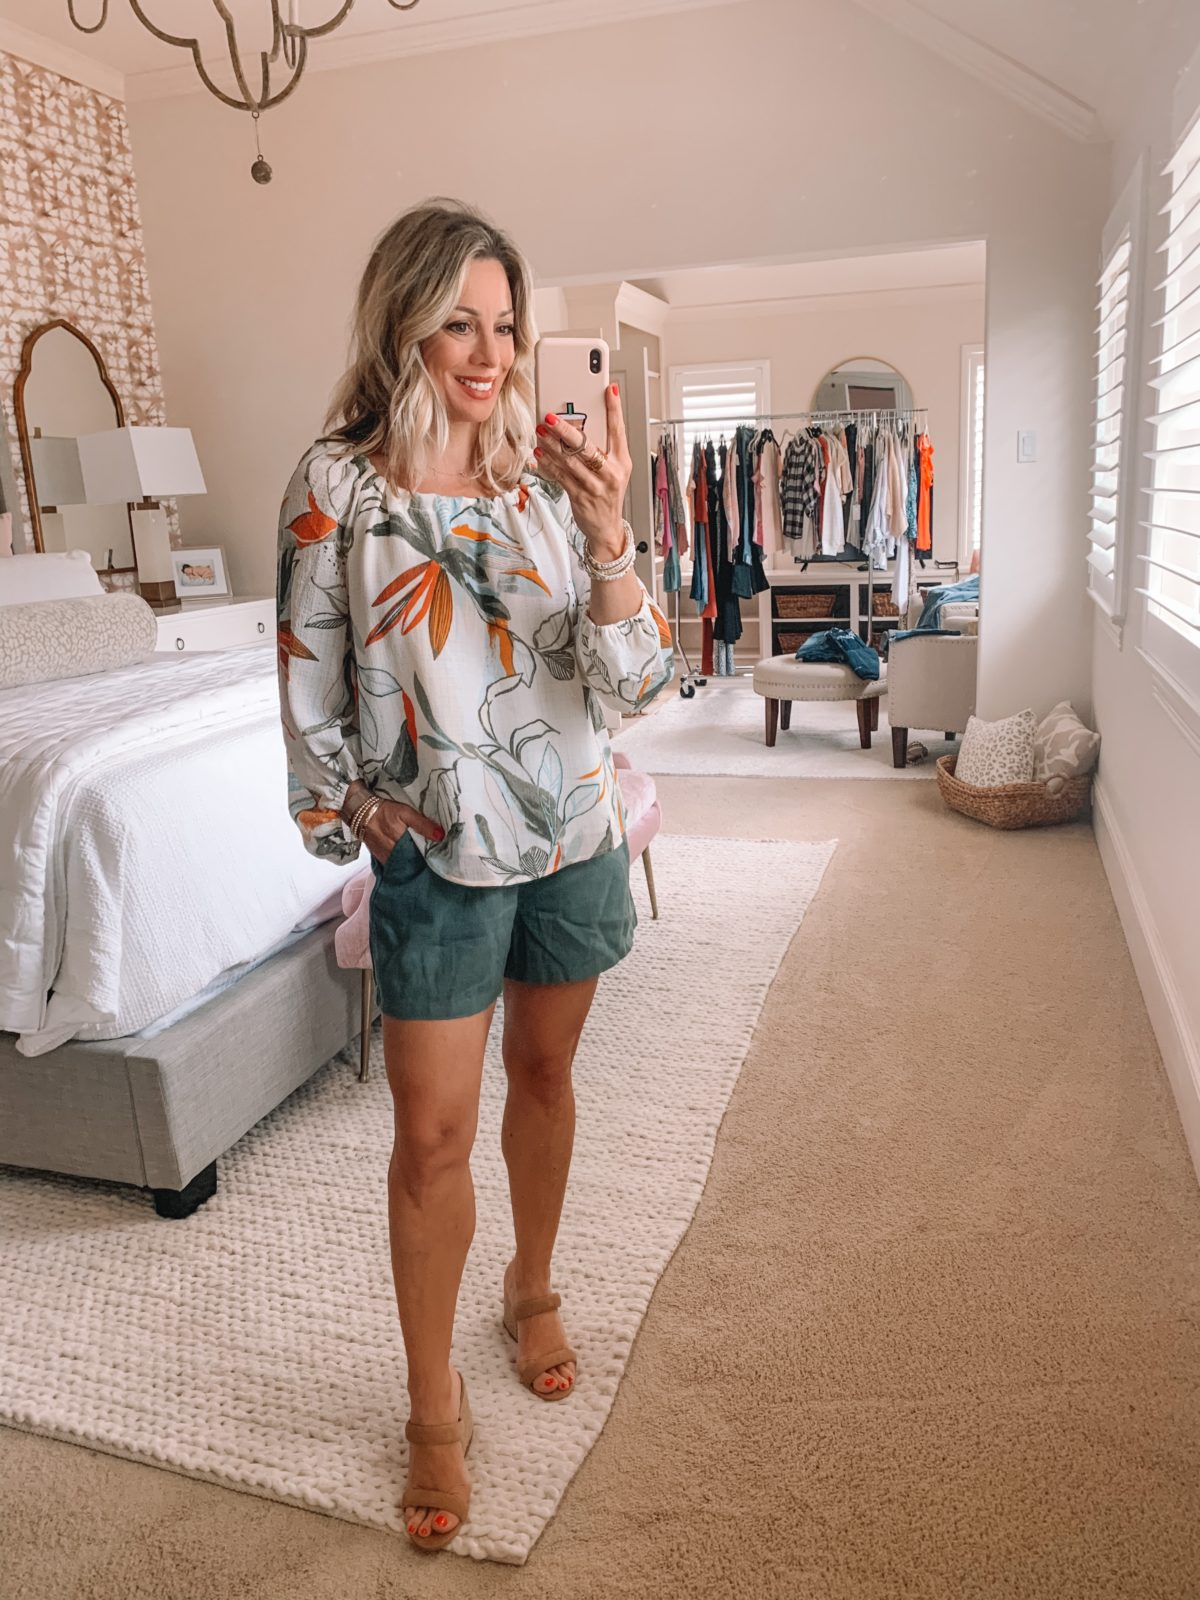 Dressing Room Finds Nordstrom and Target, Floral Boho Top, Linen Shorts, Sandals